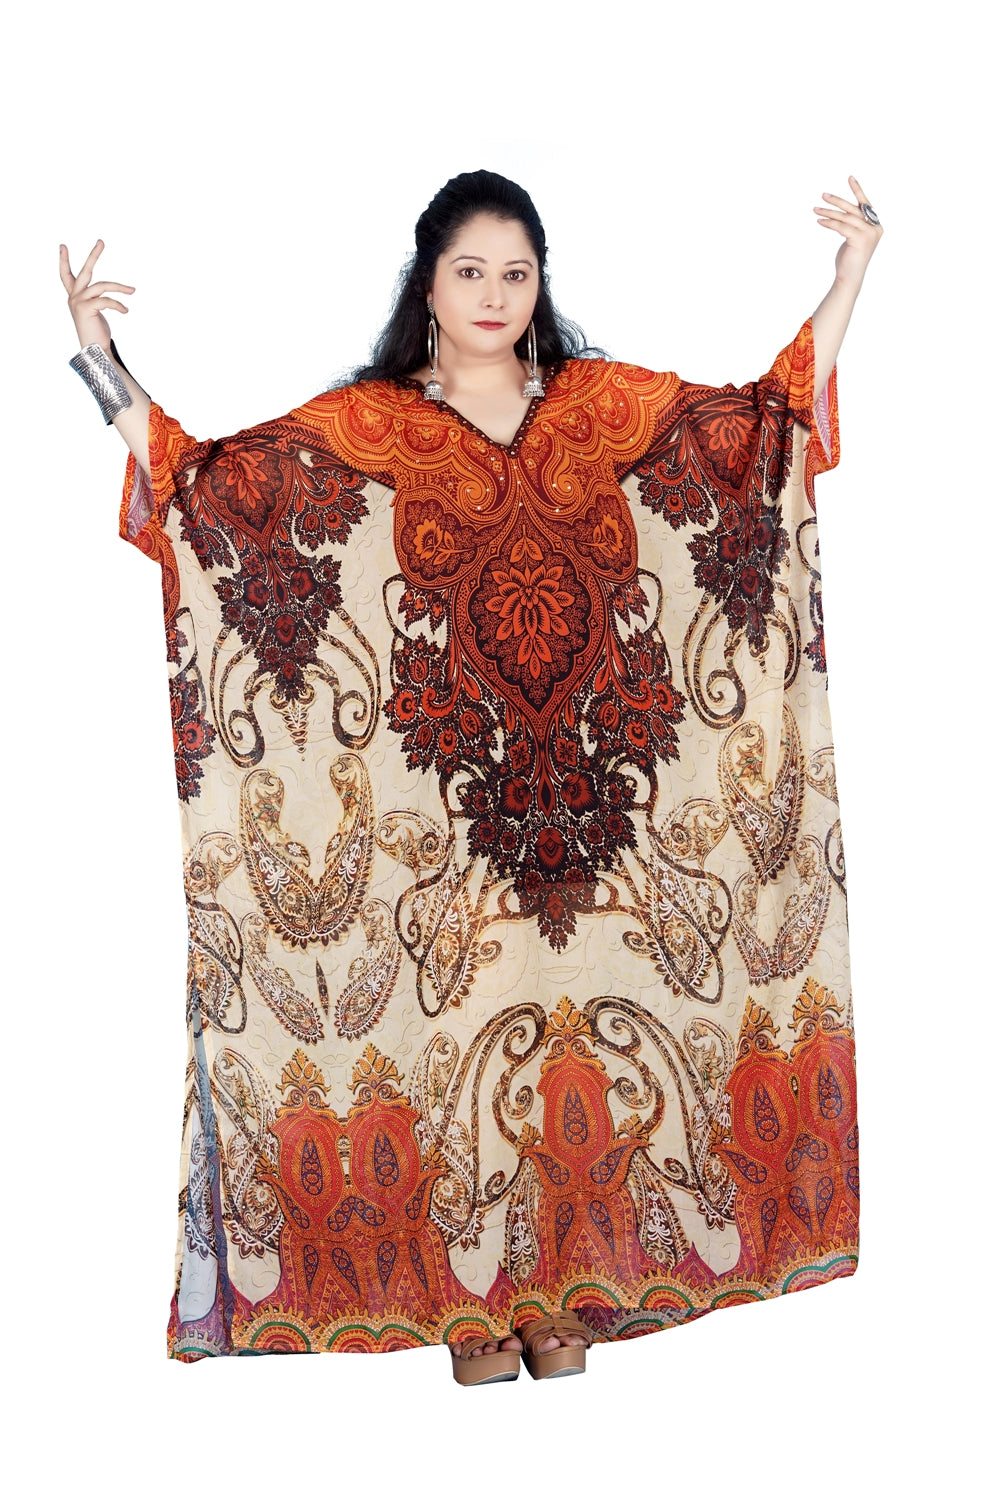 Light Embellished Maxi long kaftan with soft luxurious feel a perfect summer outfit - Silk kaftan